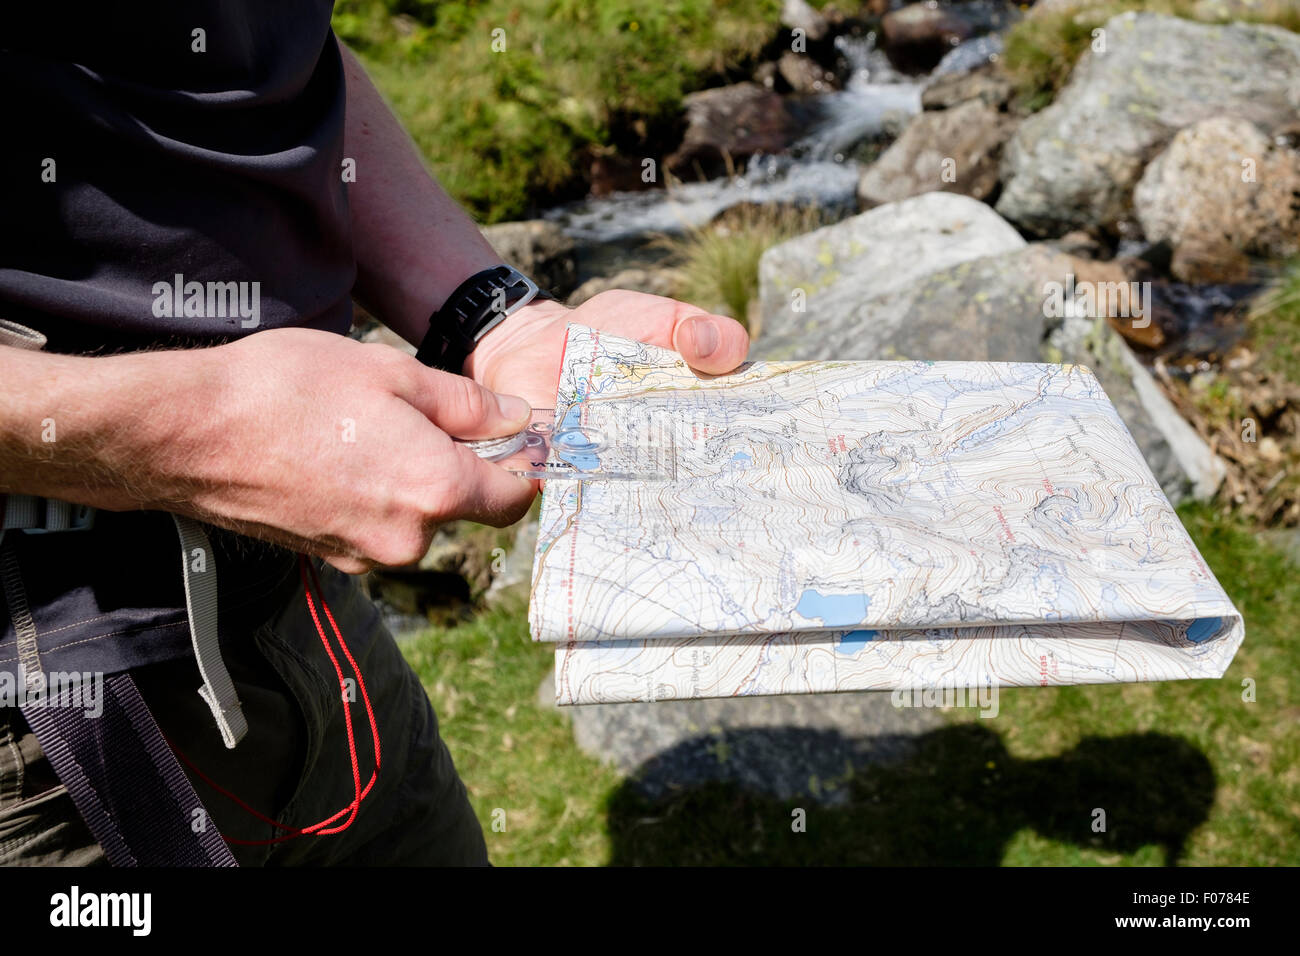 Hiker holding a hiking map and using a navigation compass to measure distance navigating on a hike in Snowdonia - Stock Image